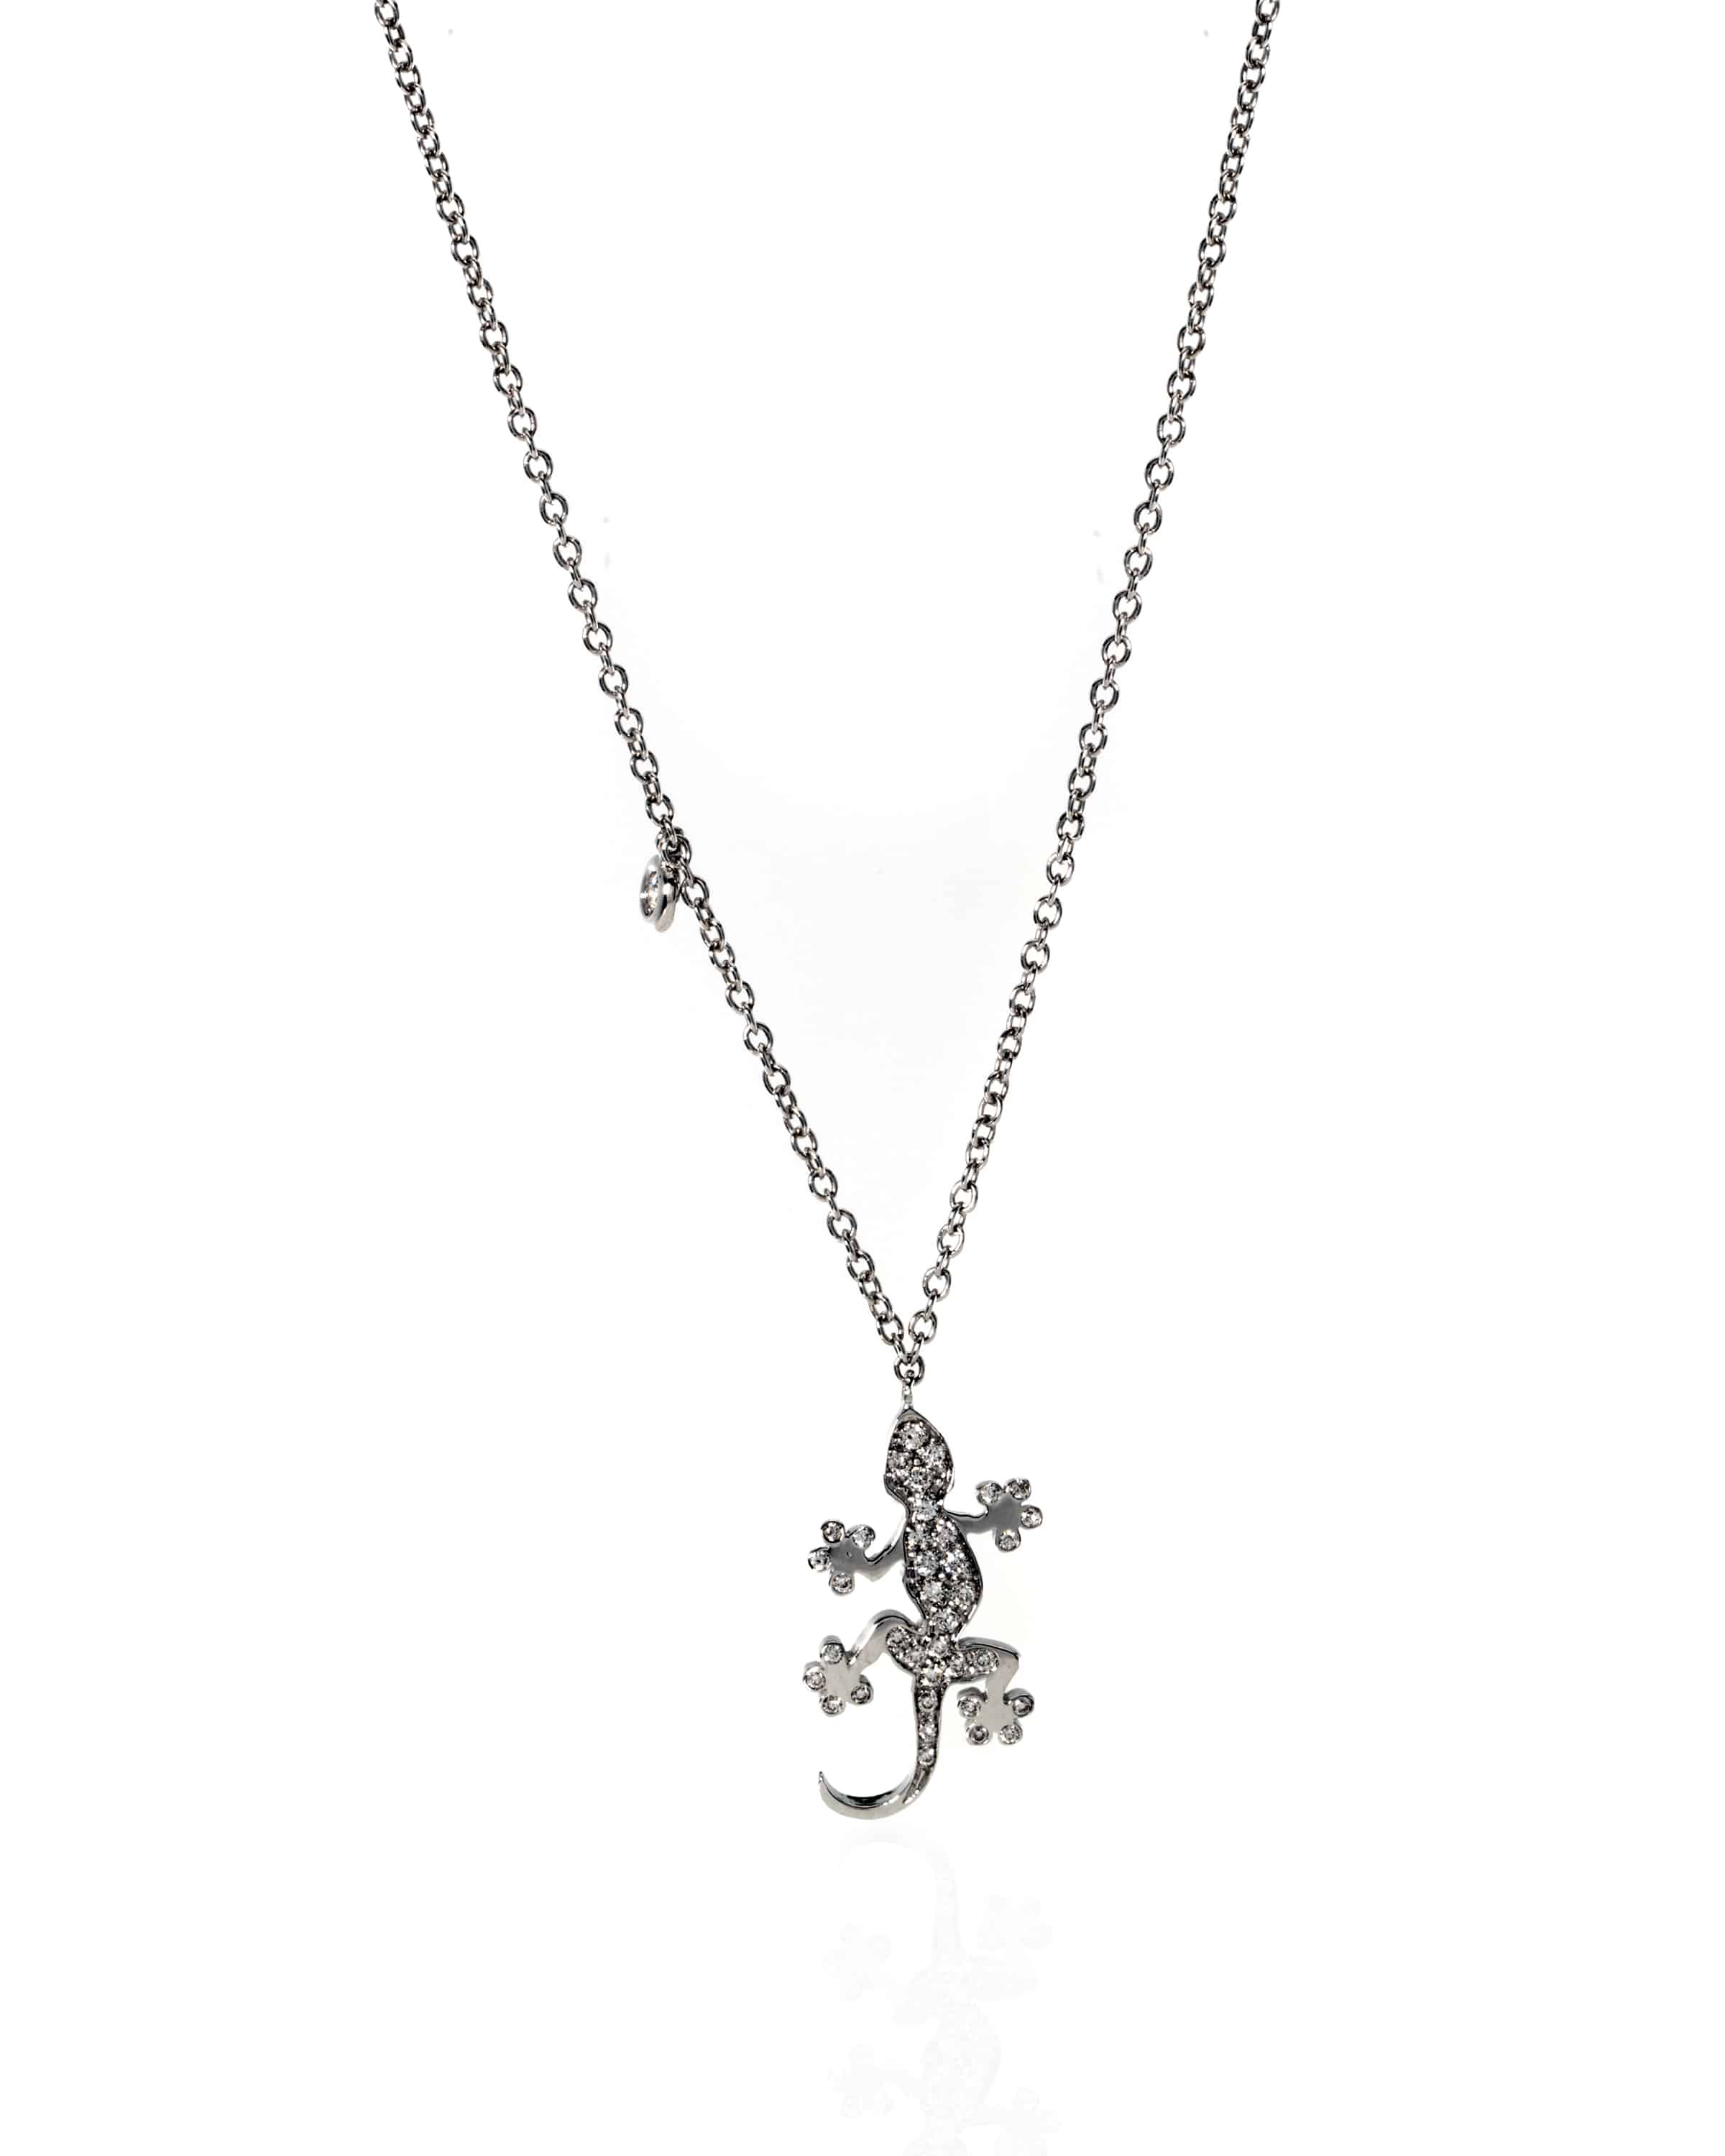 Crivelli 18k White Gold Diamond Necklace